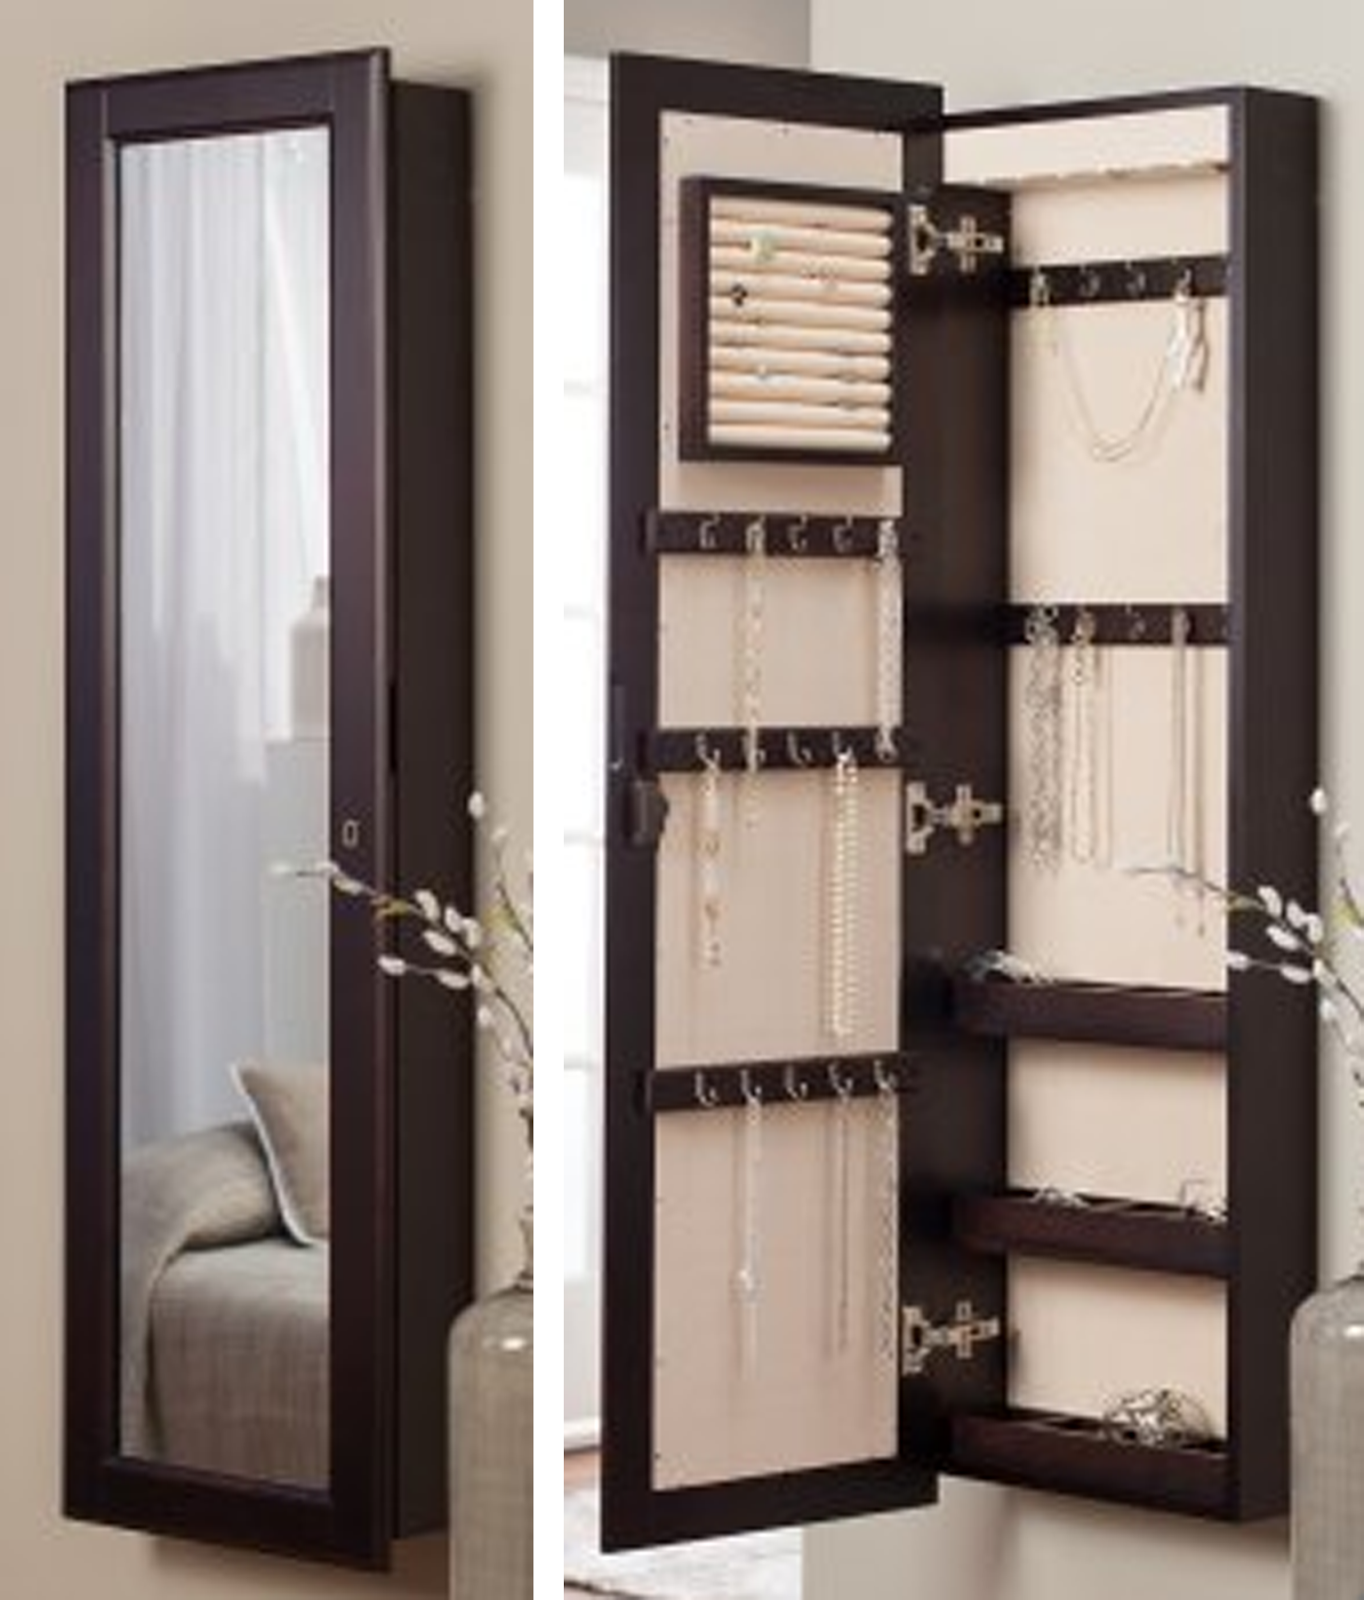 Marvelous Elegant Wooden Standing Mirror Jewelry Armoire In Dark Brown Before The  Silver Wall For Bedroom Decor